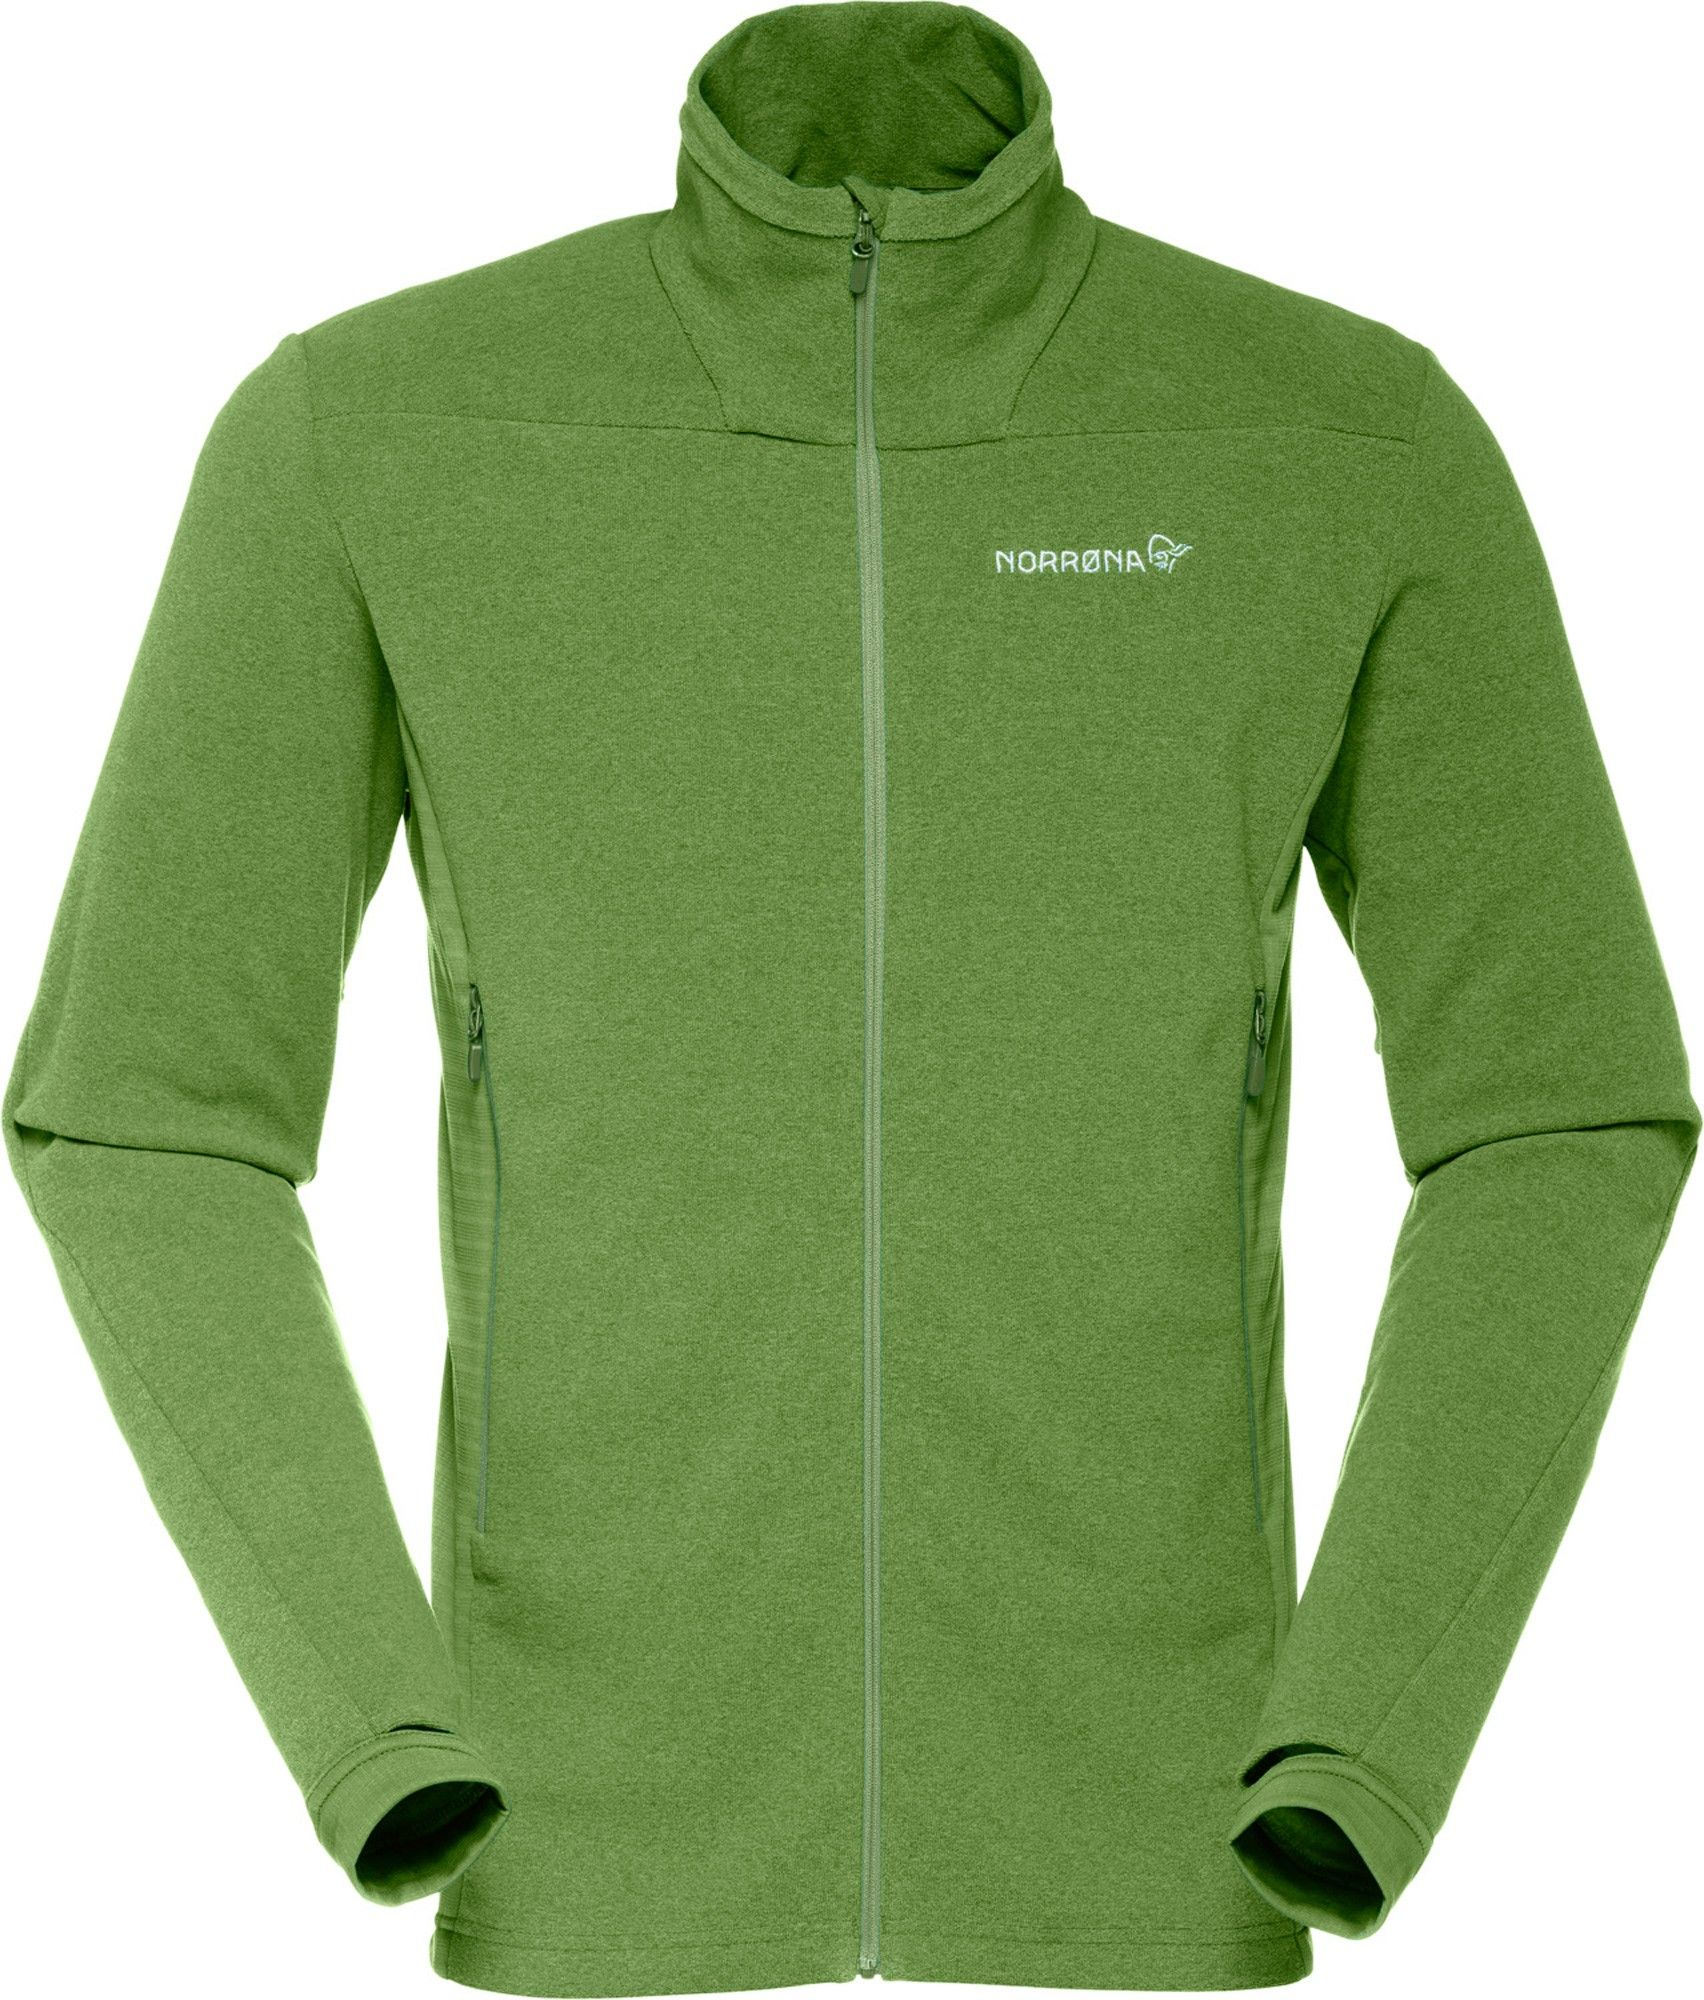 Norrona Falketind Warm1 Jacket Grün, Male Polartec® Fleecejacke, S